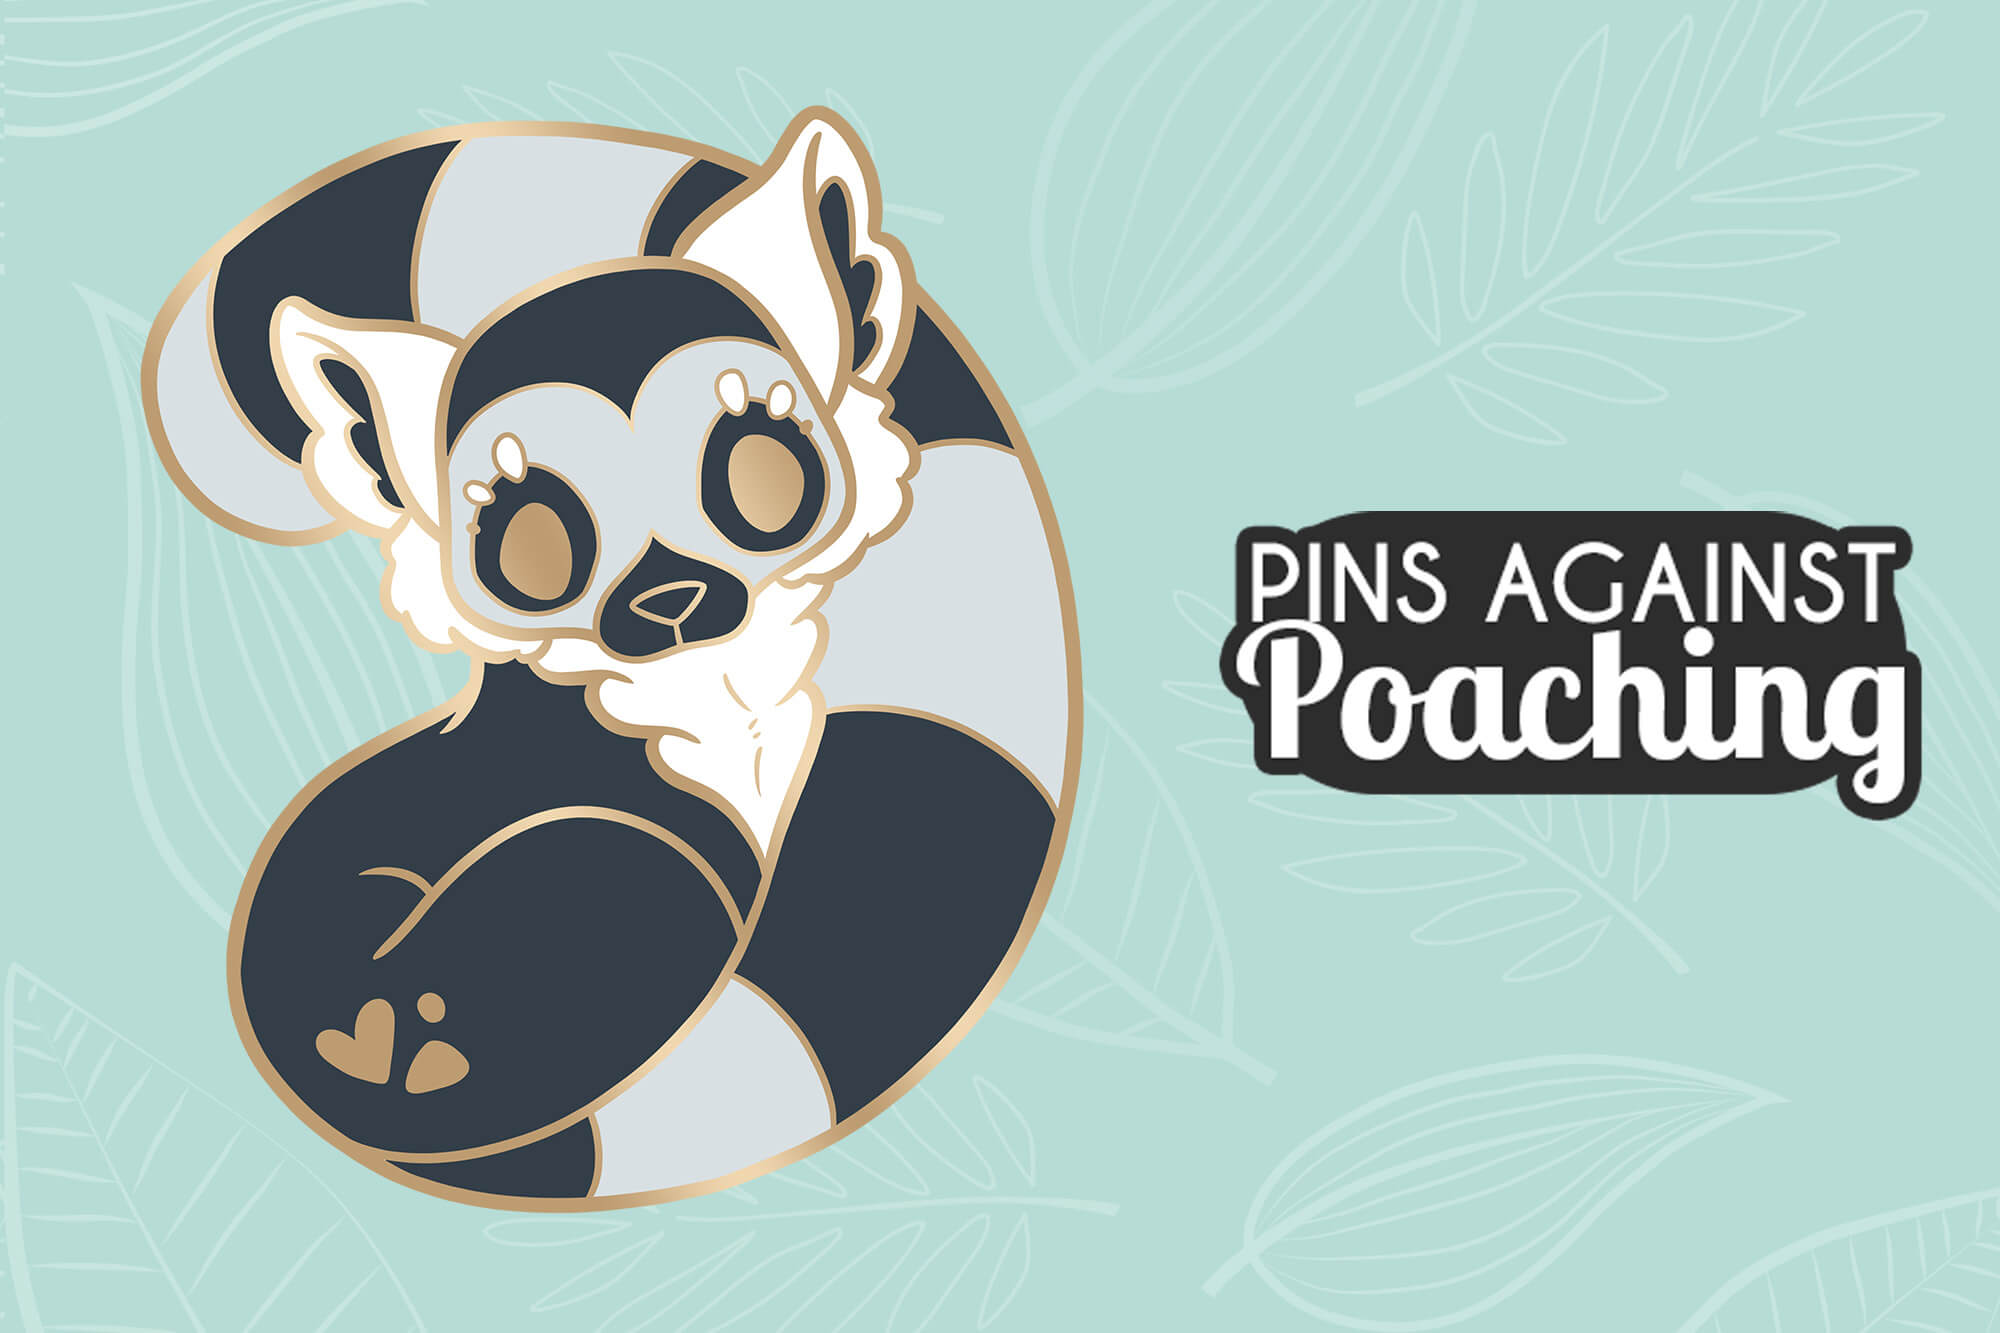 PINS AGAINST POACHING